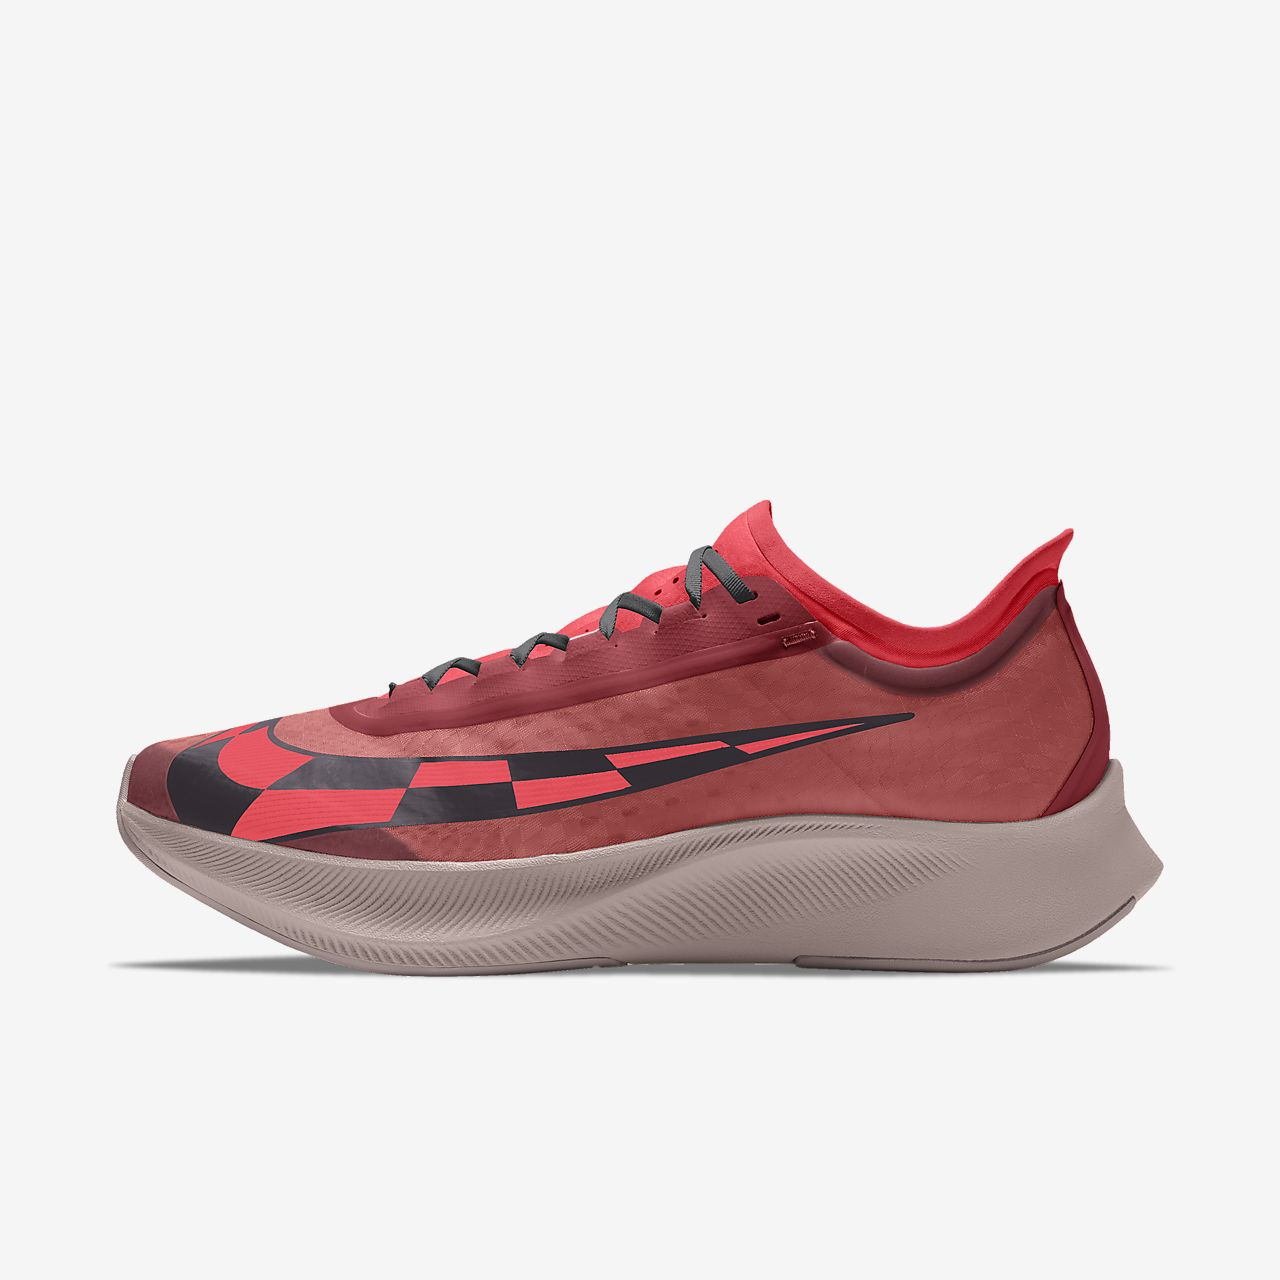 Chaussure de running personnalisable Nike Zoom Fly 3 Premium By You